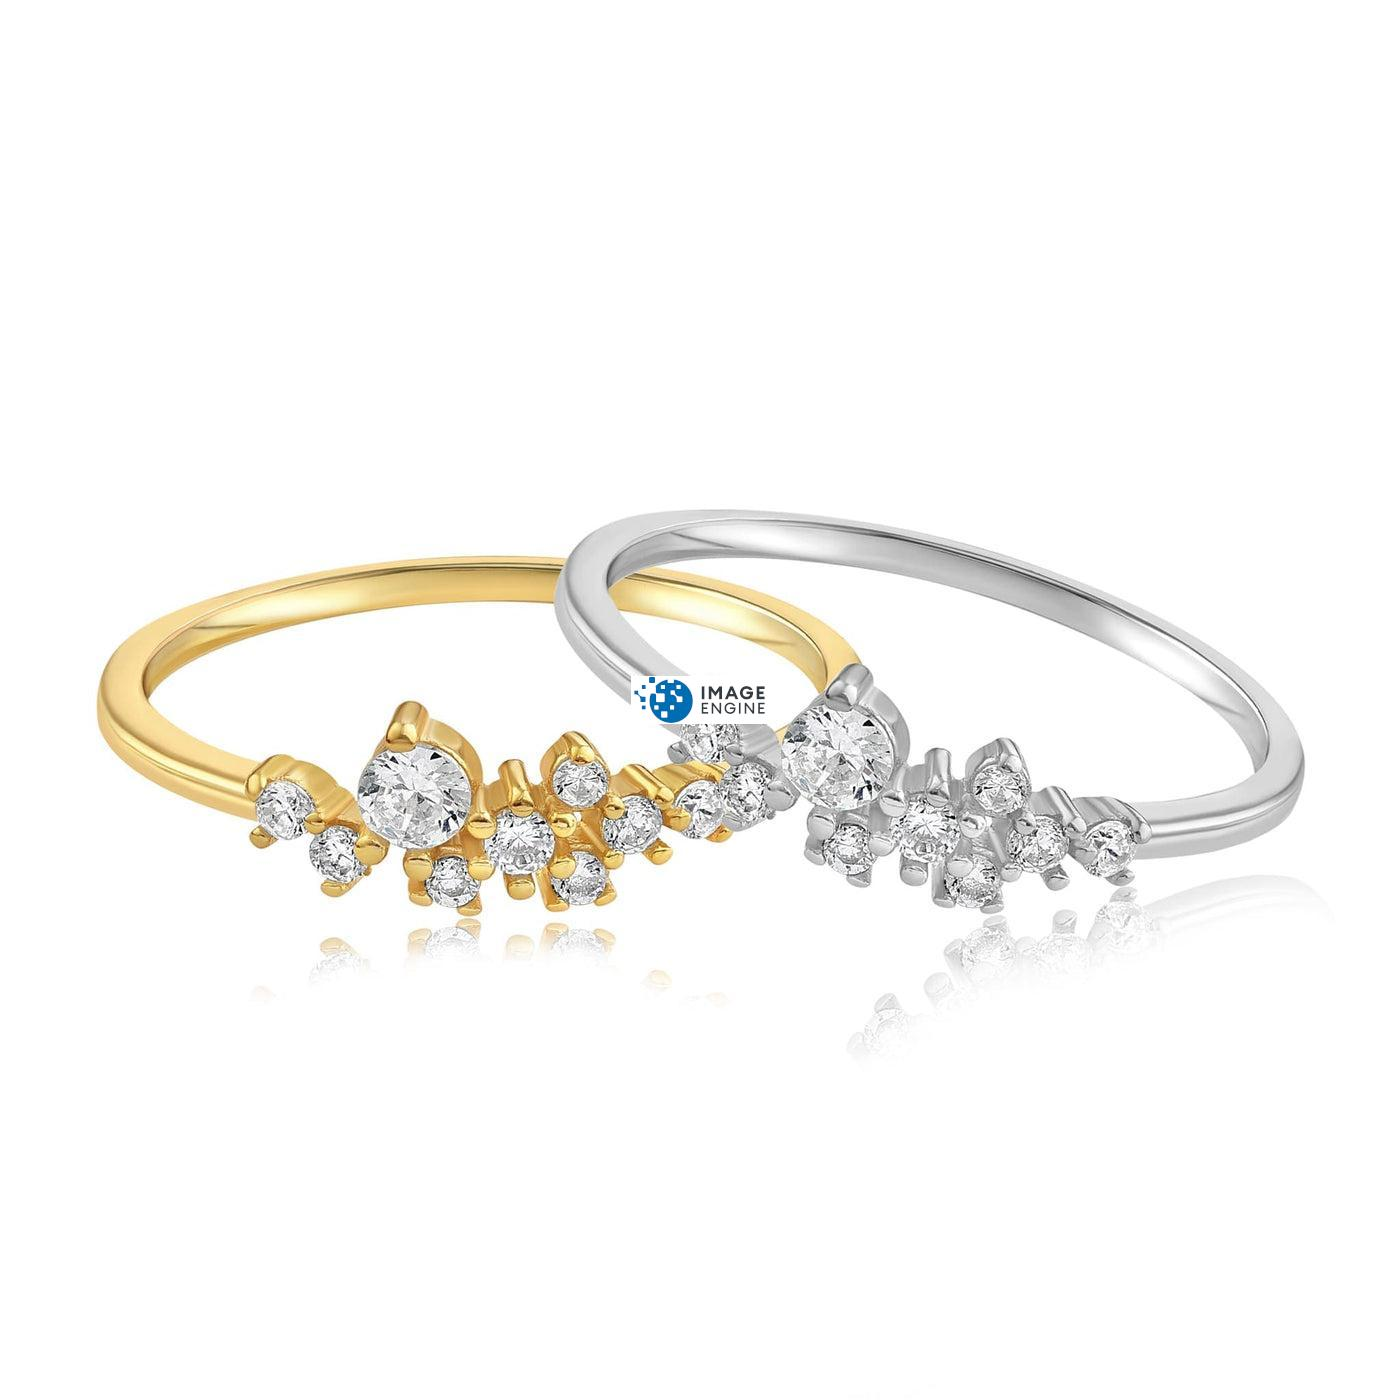 Sasha Sparkle Ring - Side by Side - 18K Yellow Gold and 925 Sterling Silver